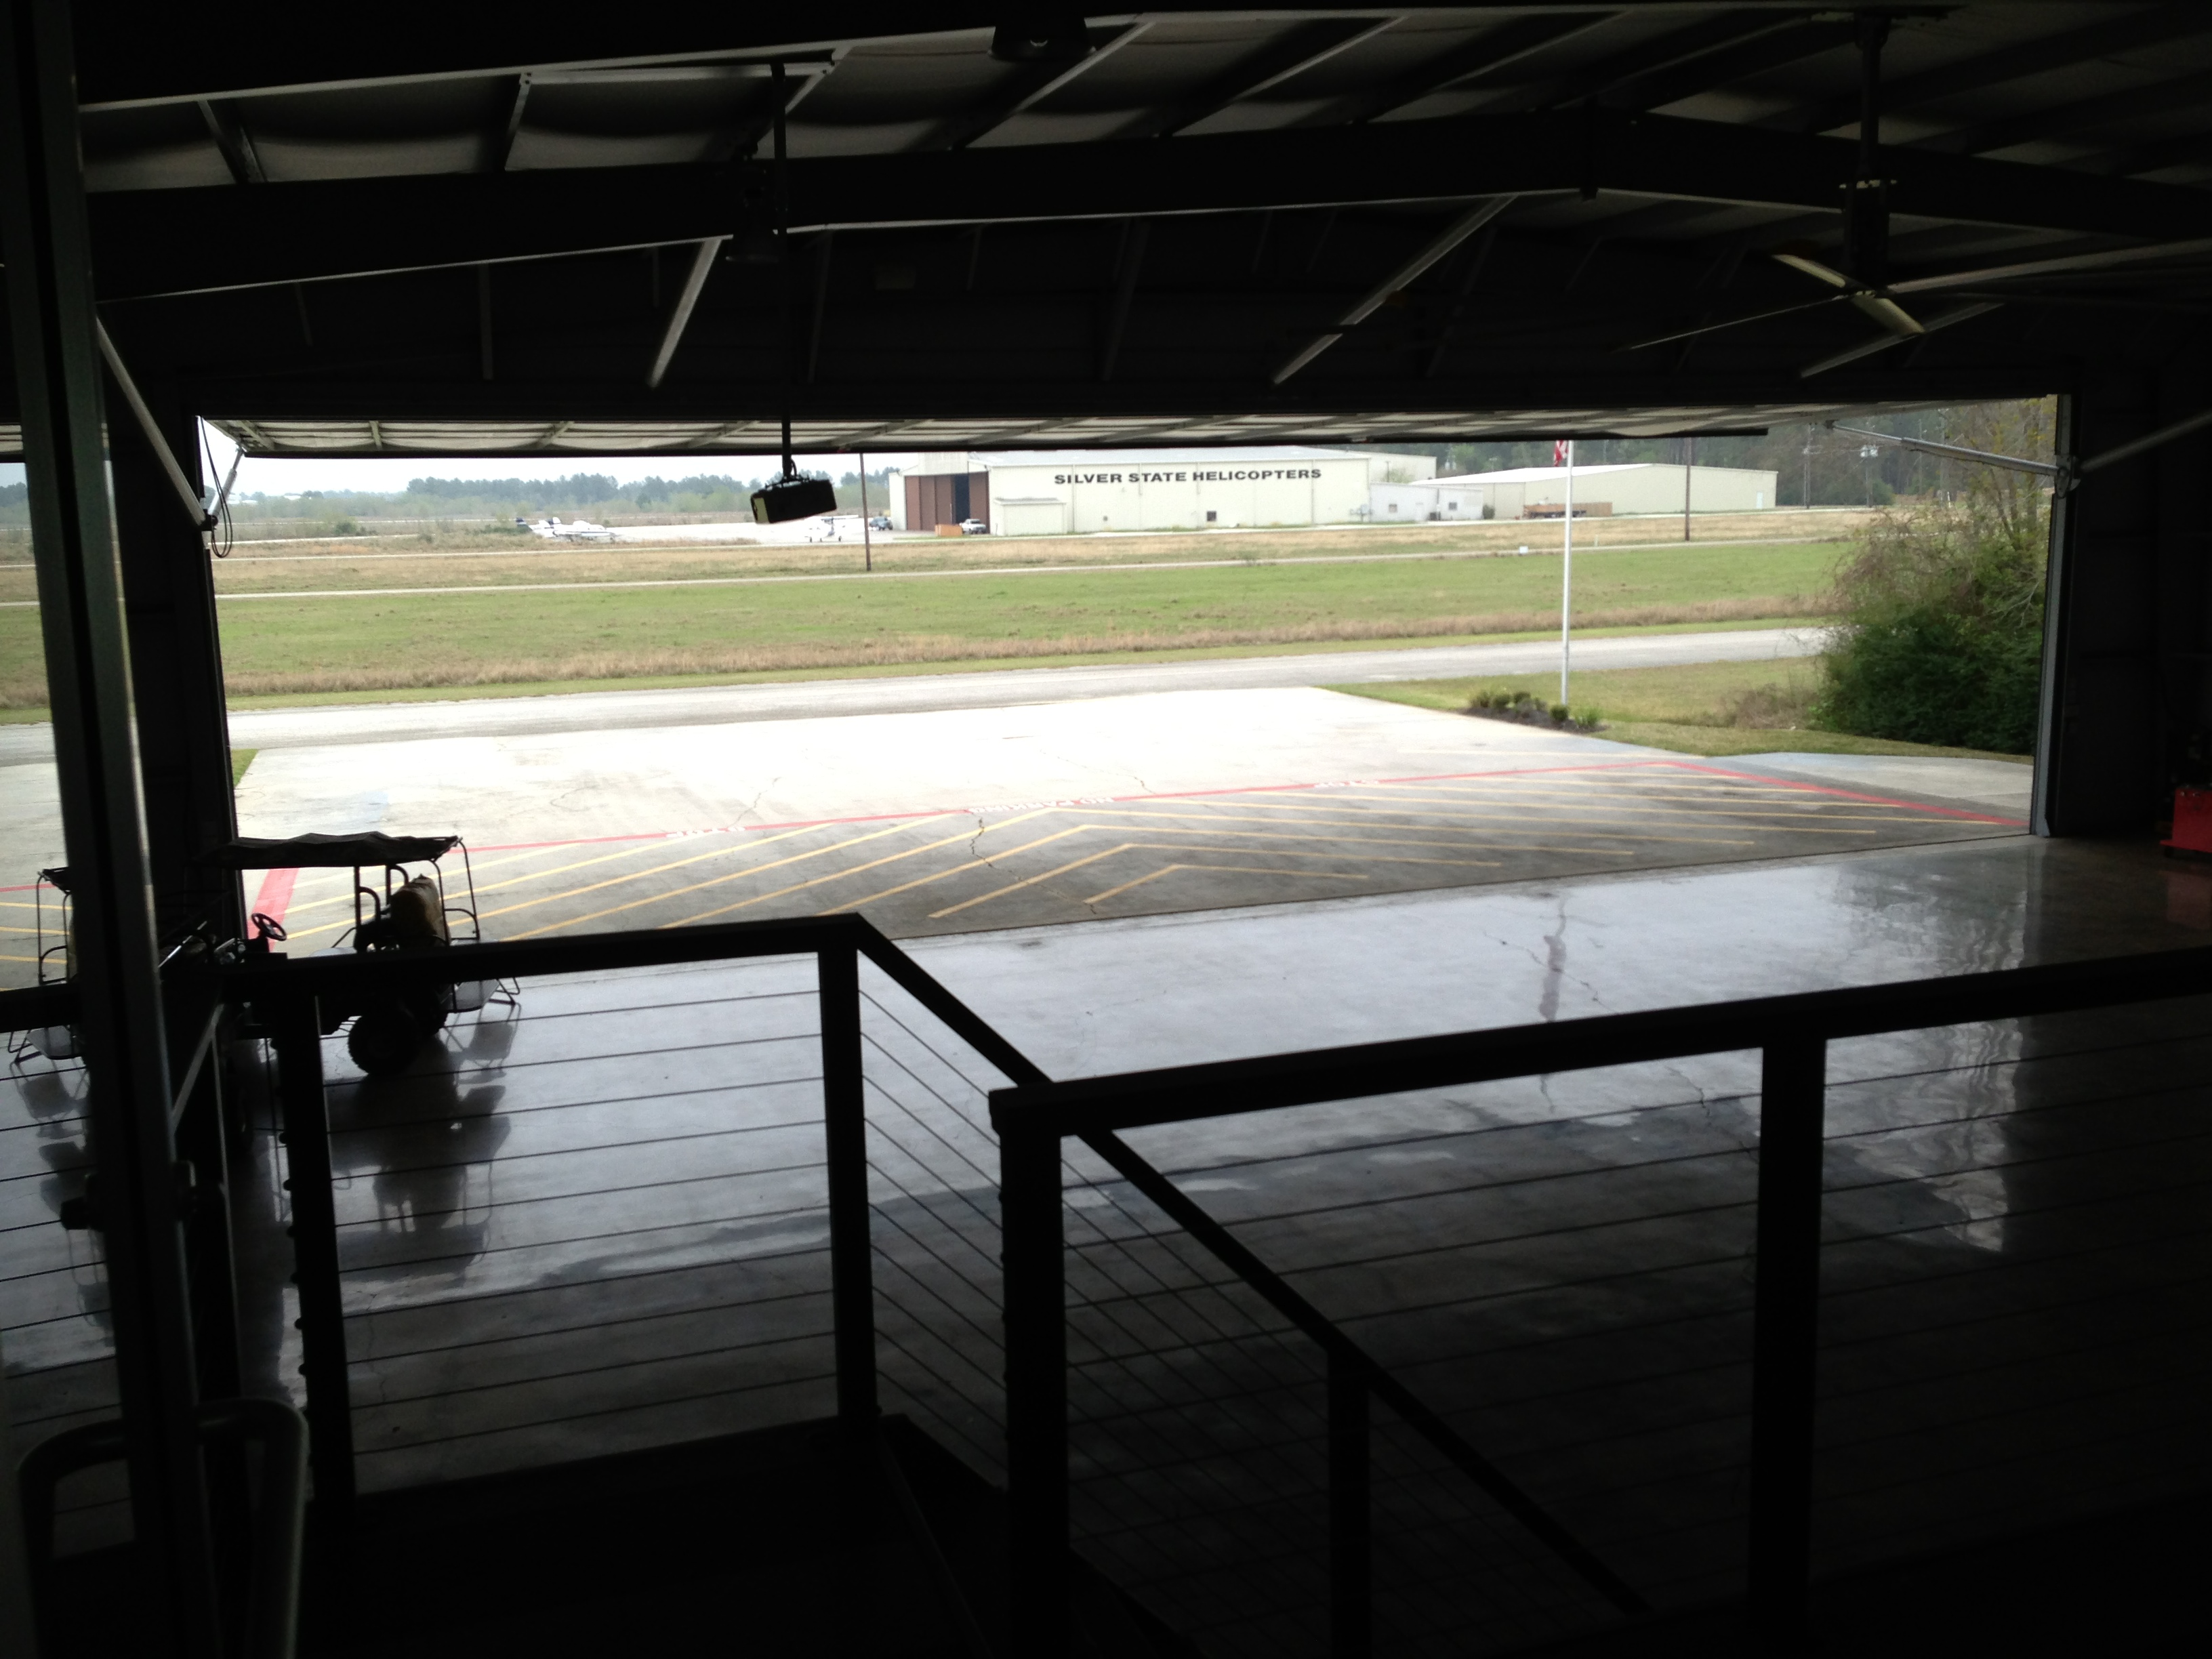 Shot from inside the Patricks hangar looking out